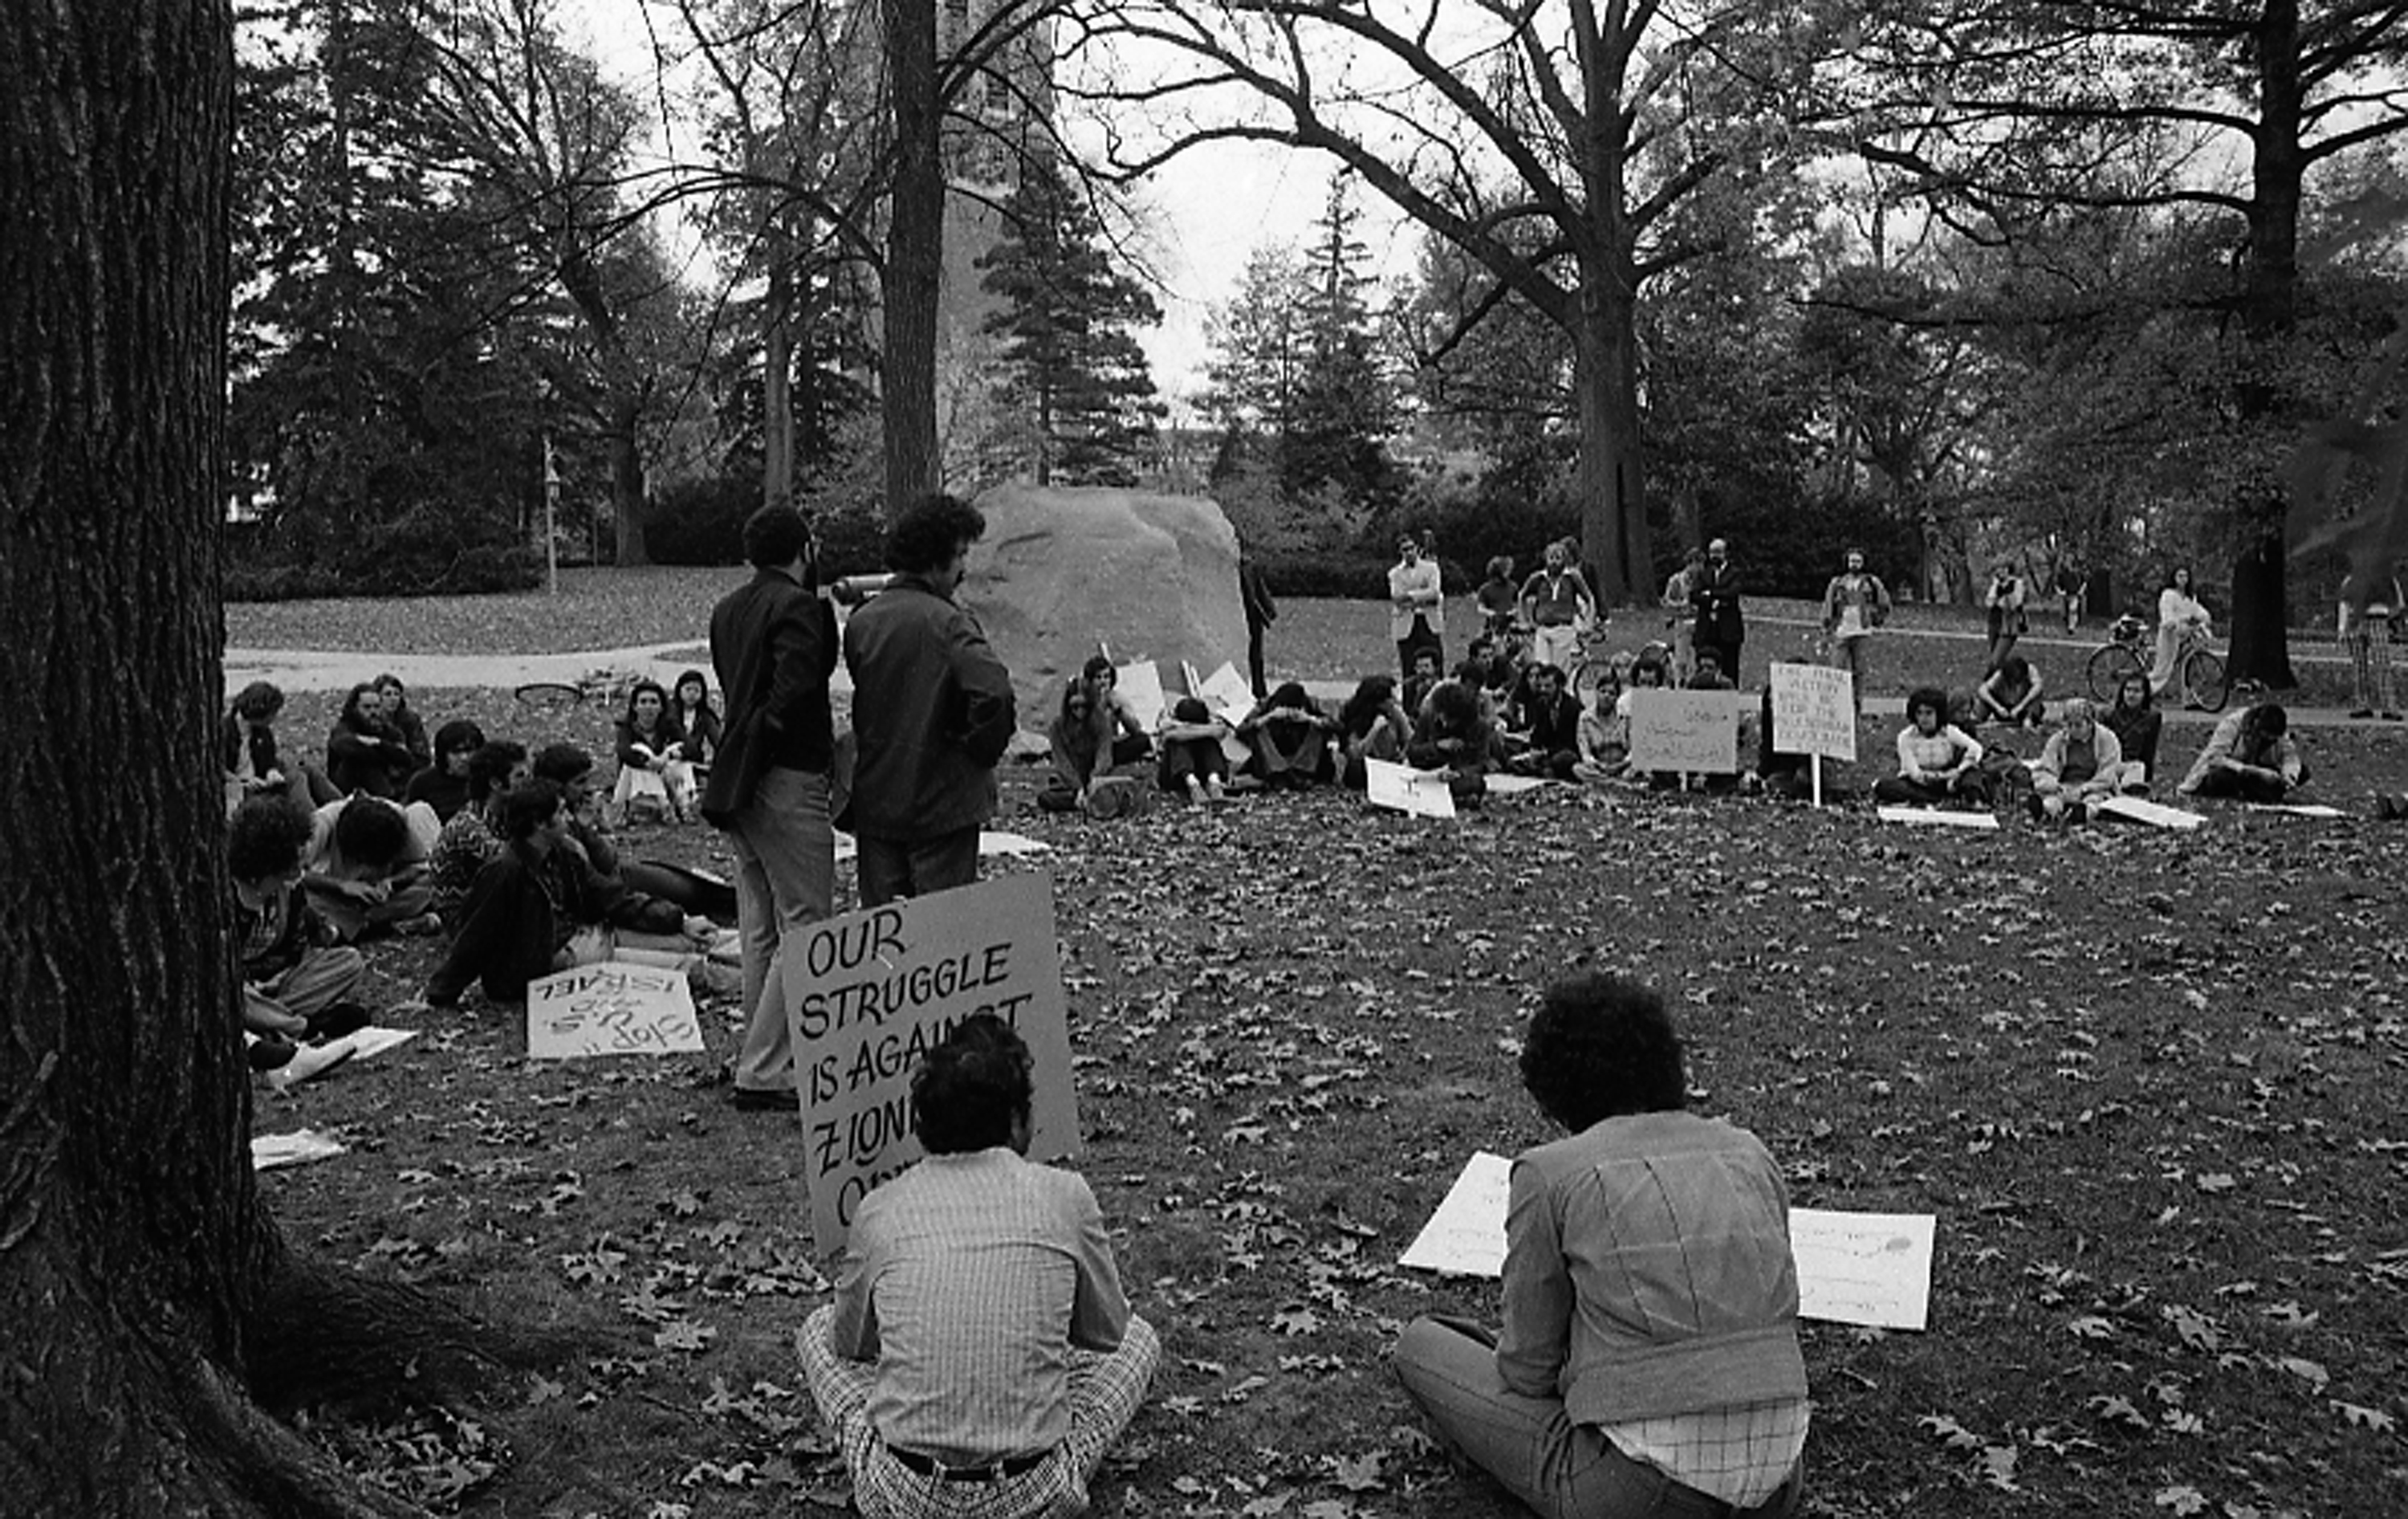 Protest at the Rock, October 26, 1975